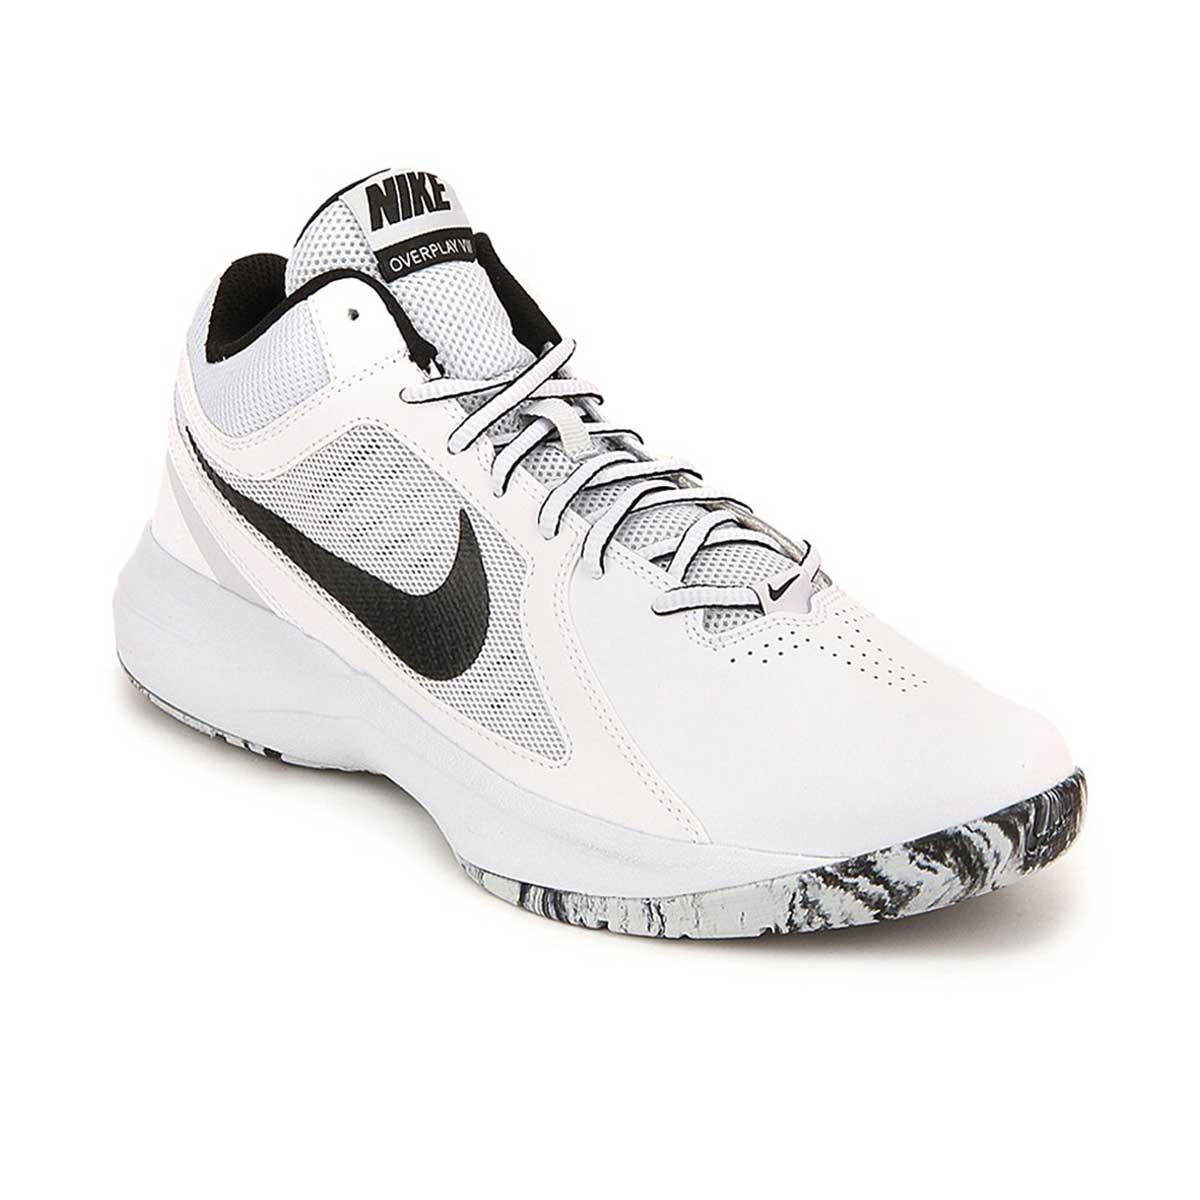 Nike Overplay Koop Viii online in India basketbalschoenen 1wzyAwxUqd